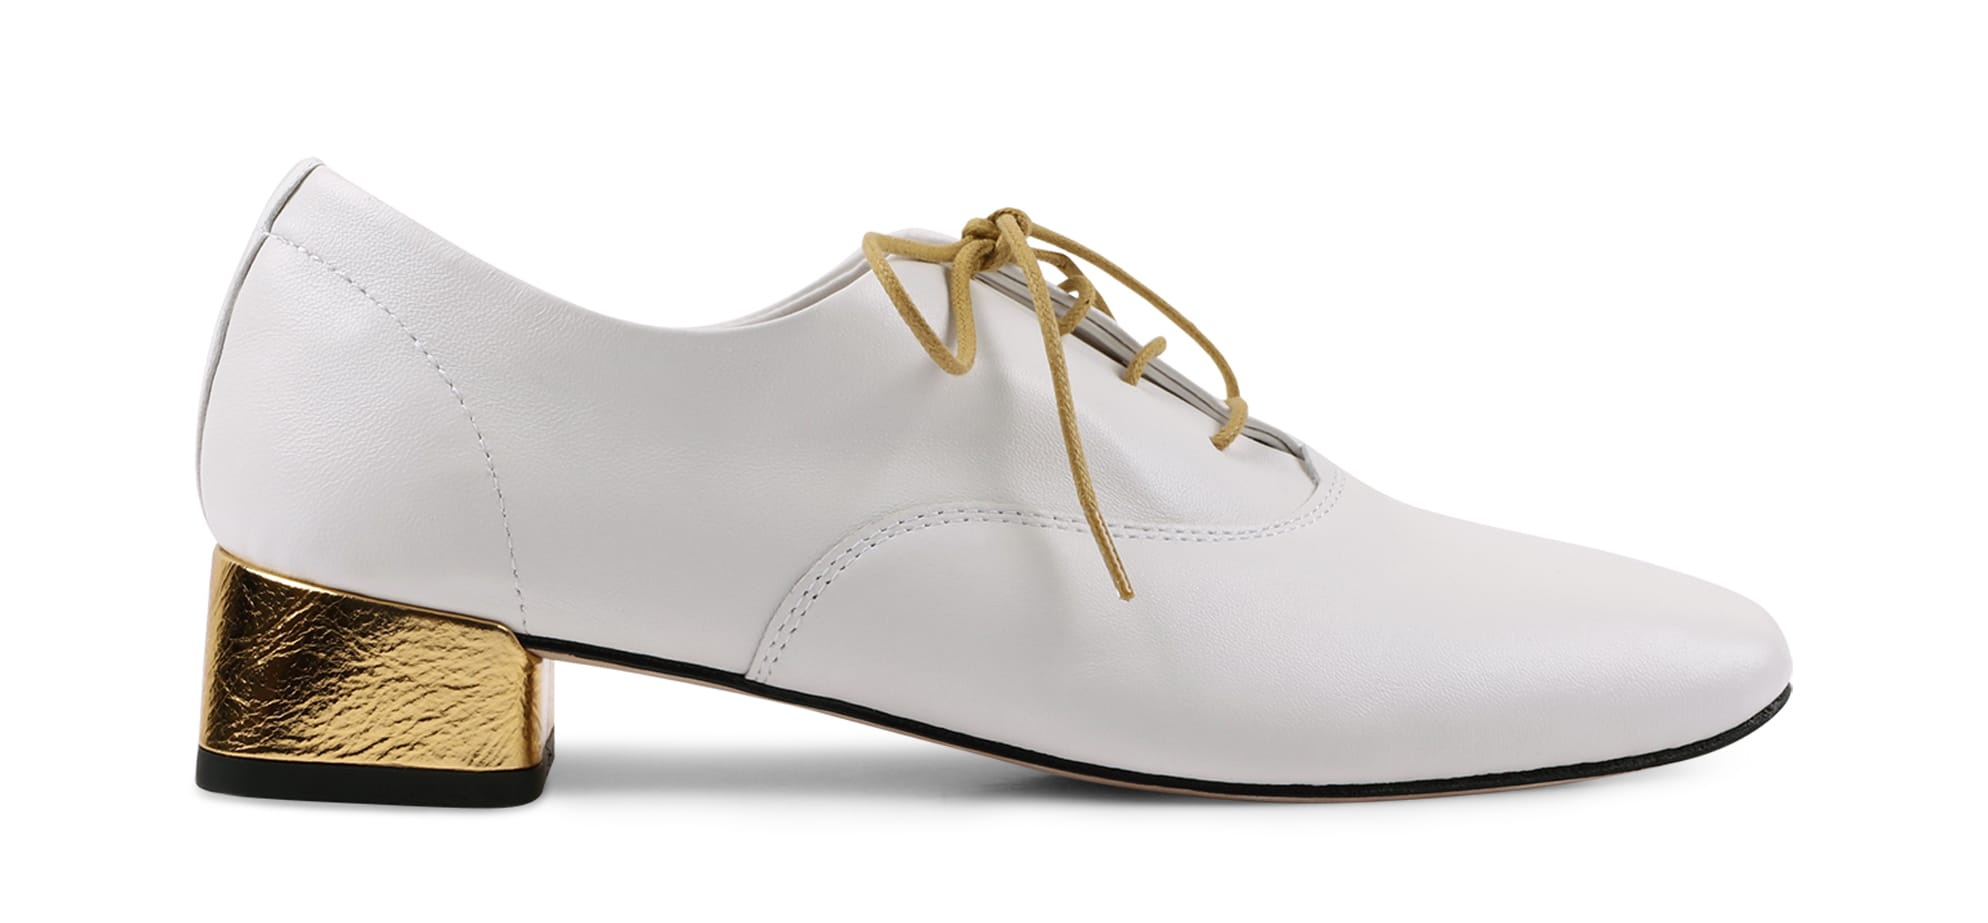 Repetto Shoes - Mark oxford shoes